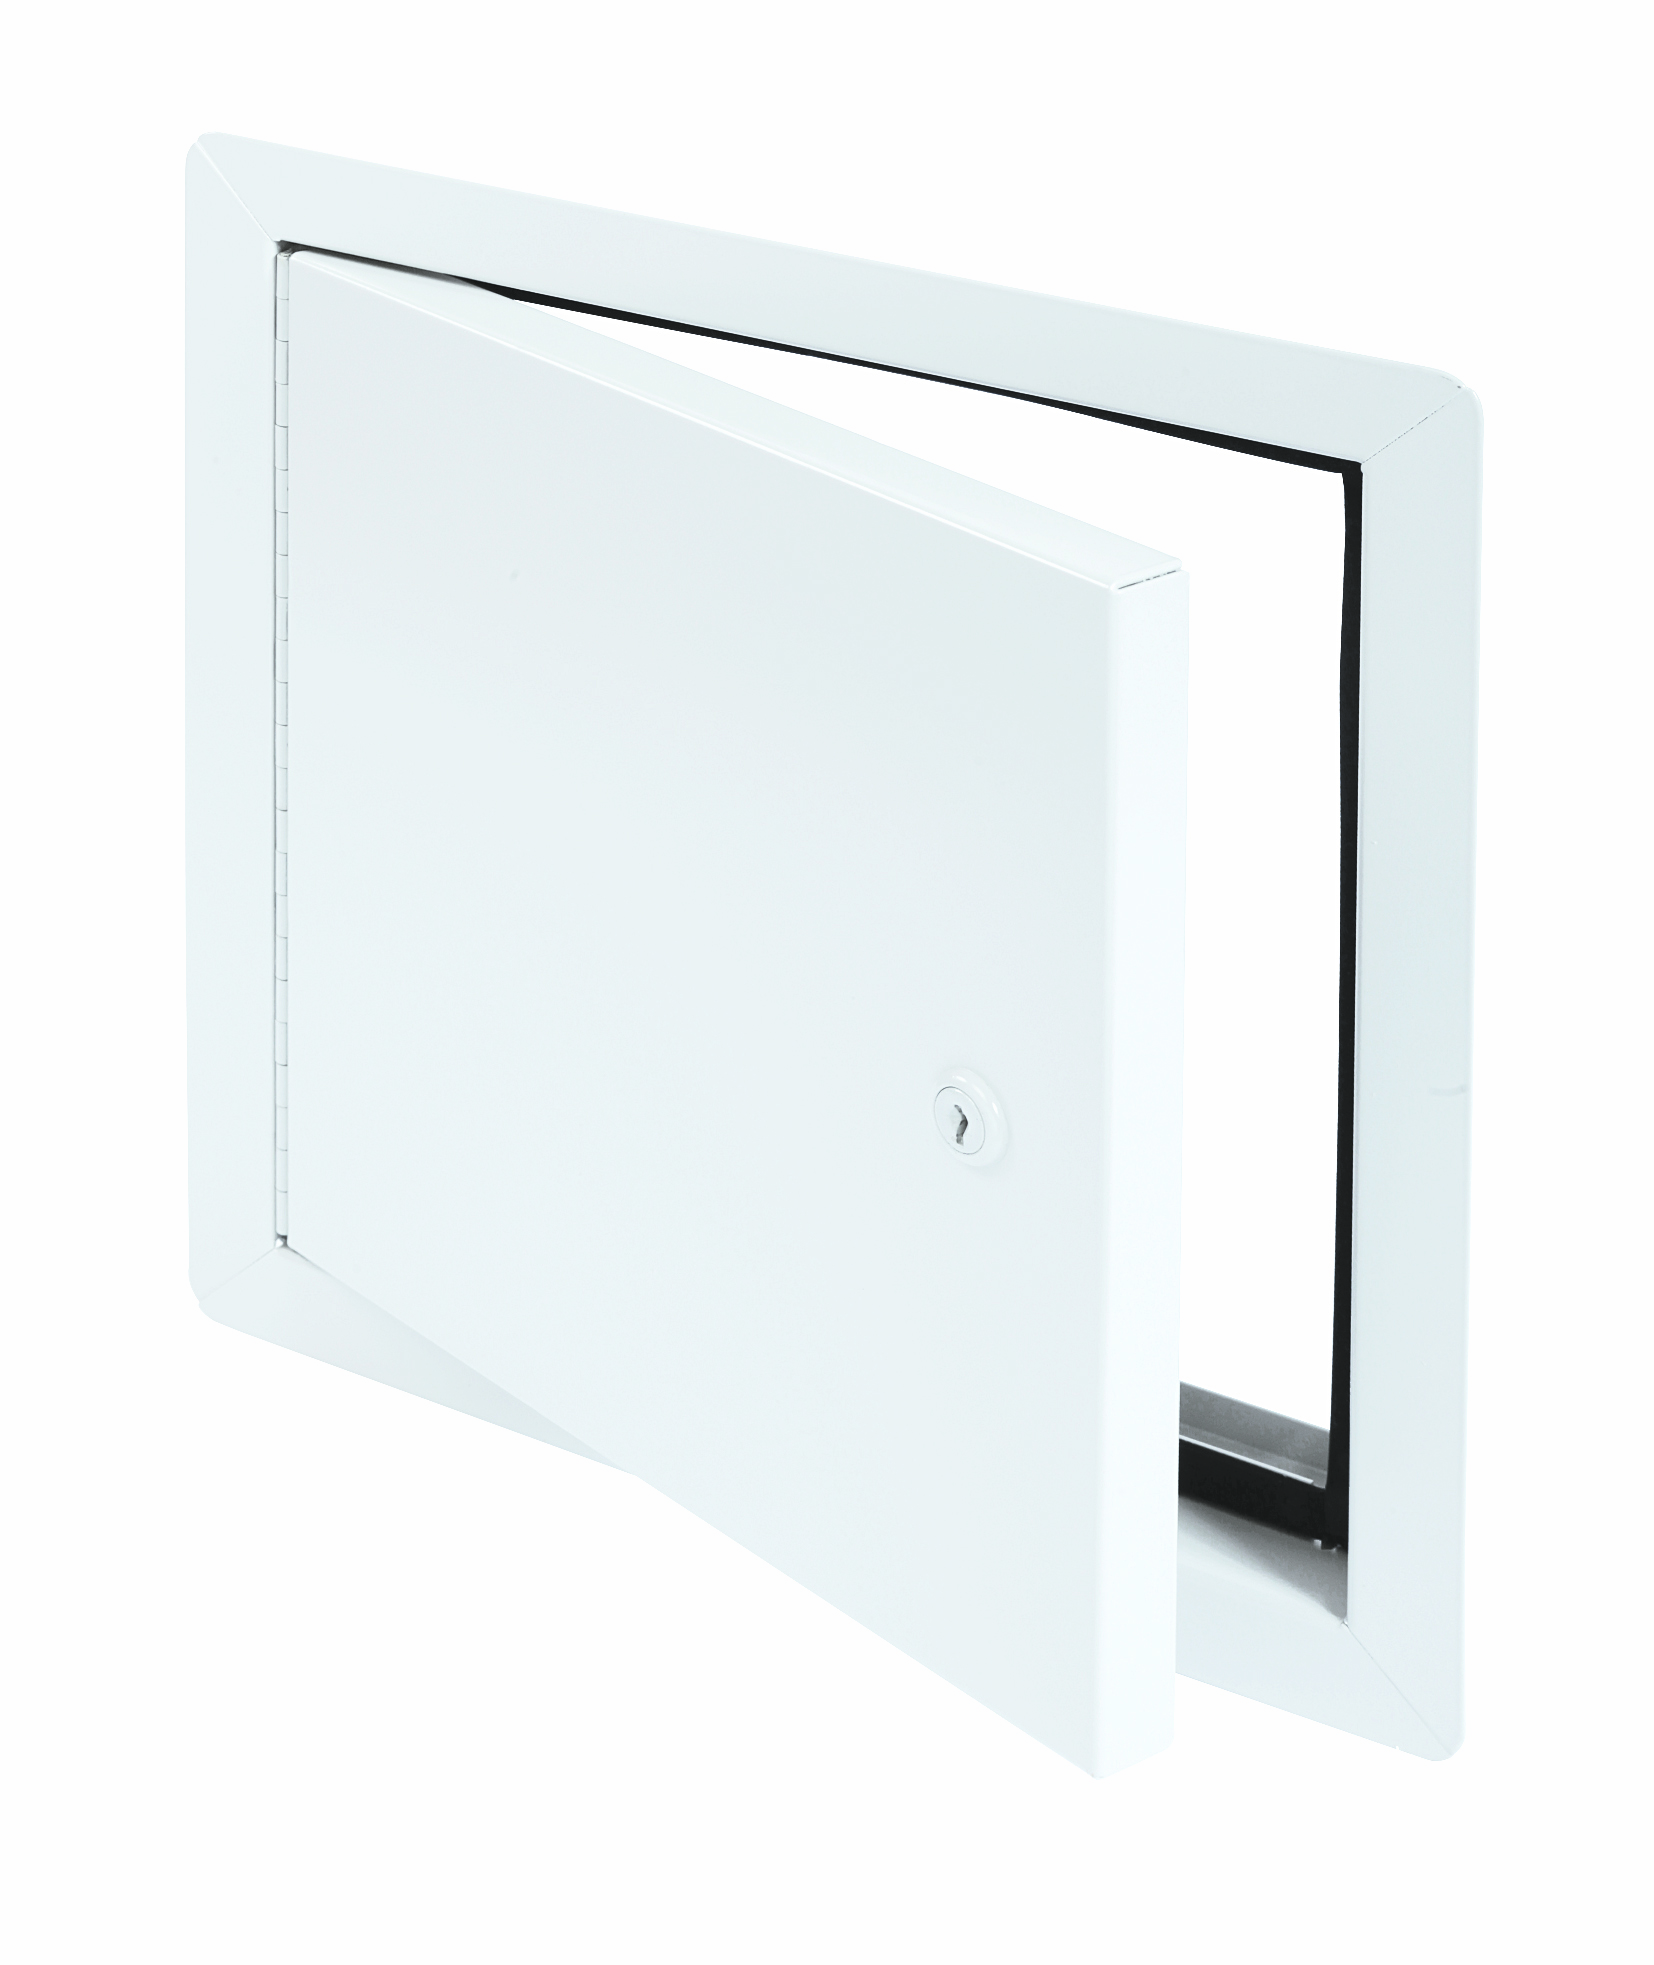 Flush Universal Insulated Aluminum Access Door with Exposed Flange, key operated cylinder cam latch, aluminum piano hinge